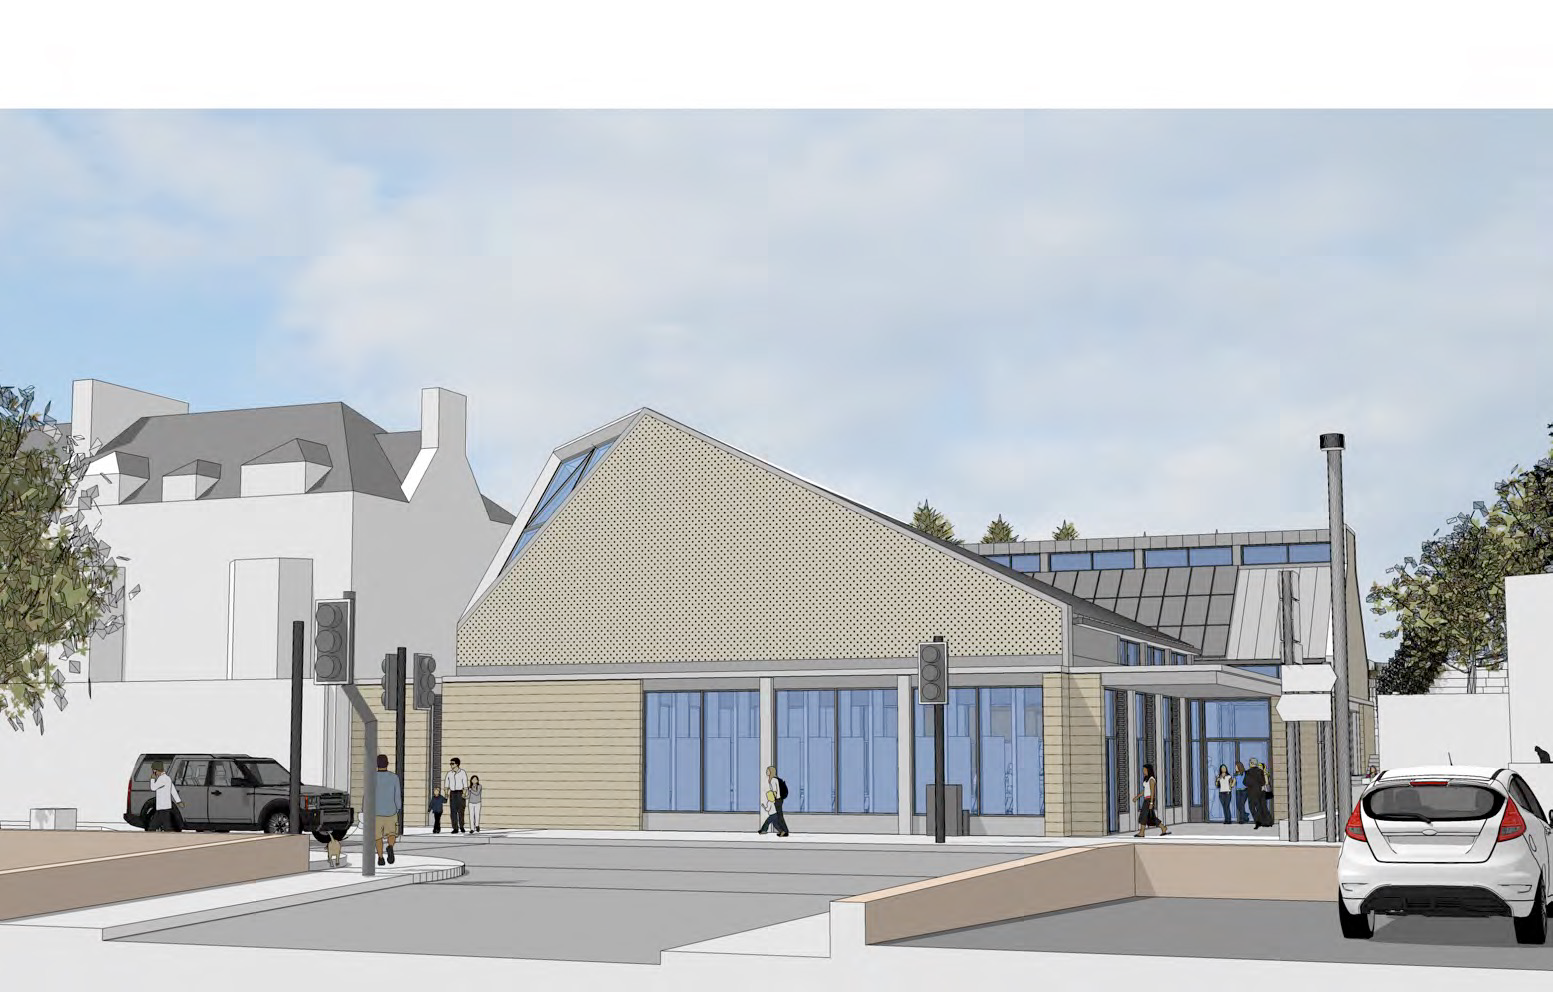 An impression of how the main church building could look, on Monifieth High Street.